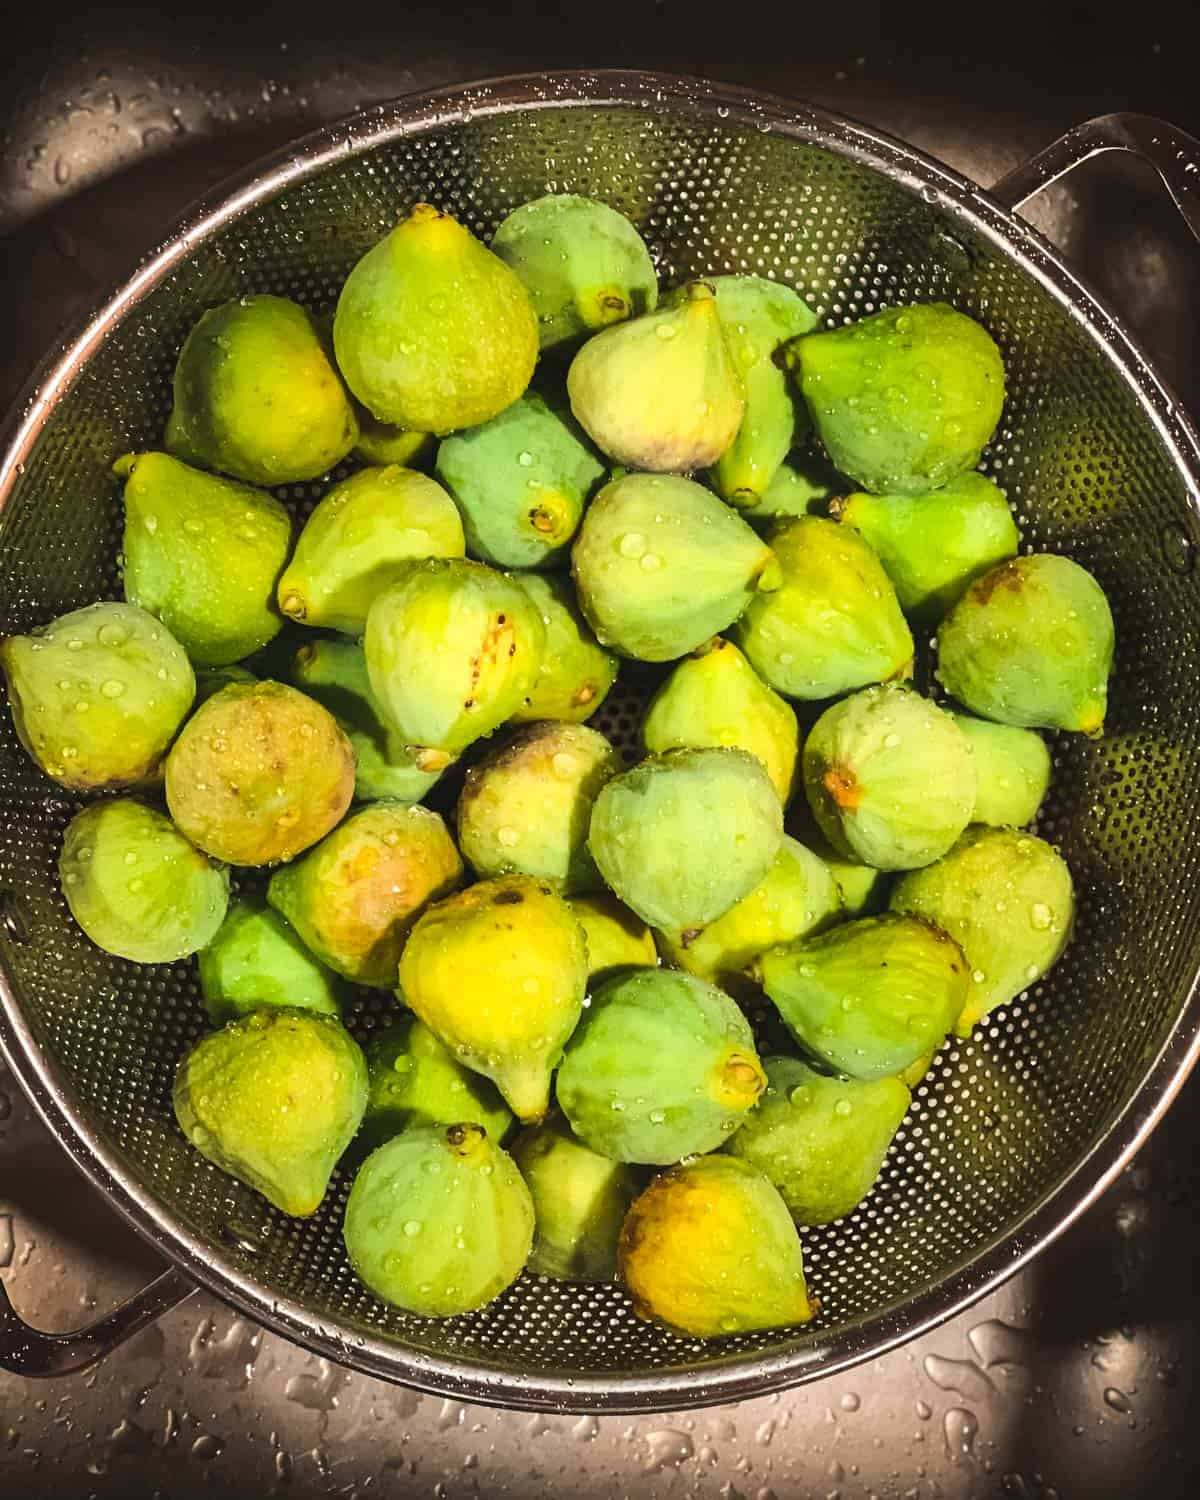 green figs being washed in a sink